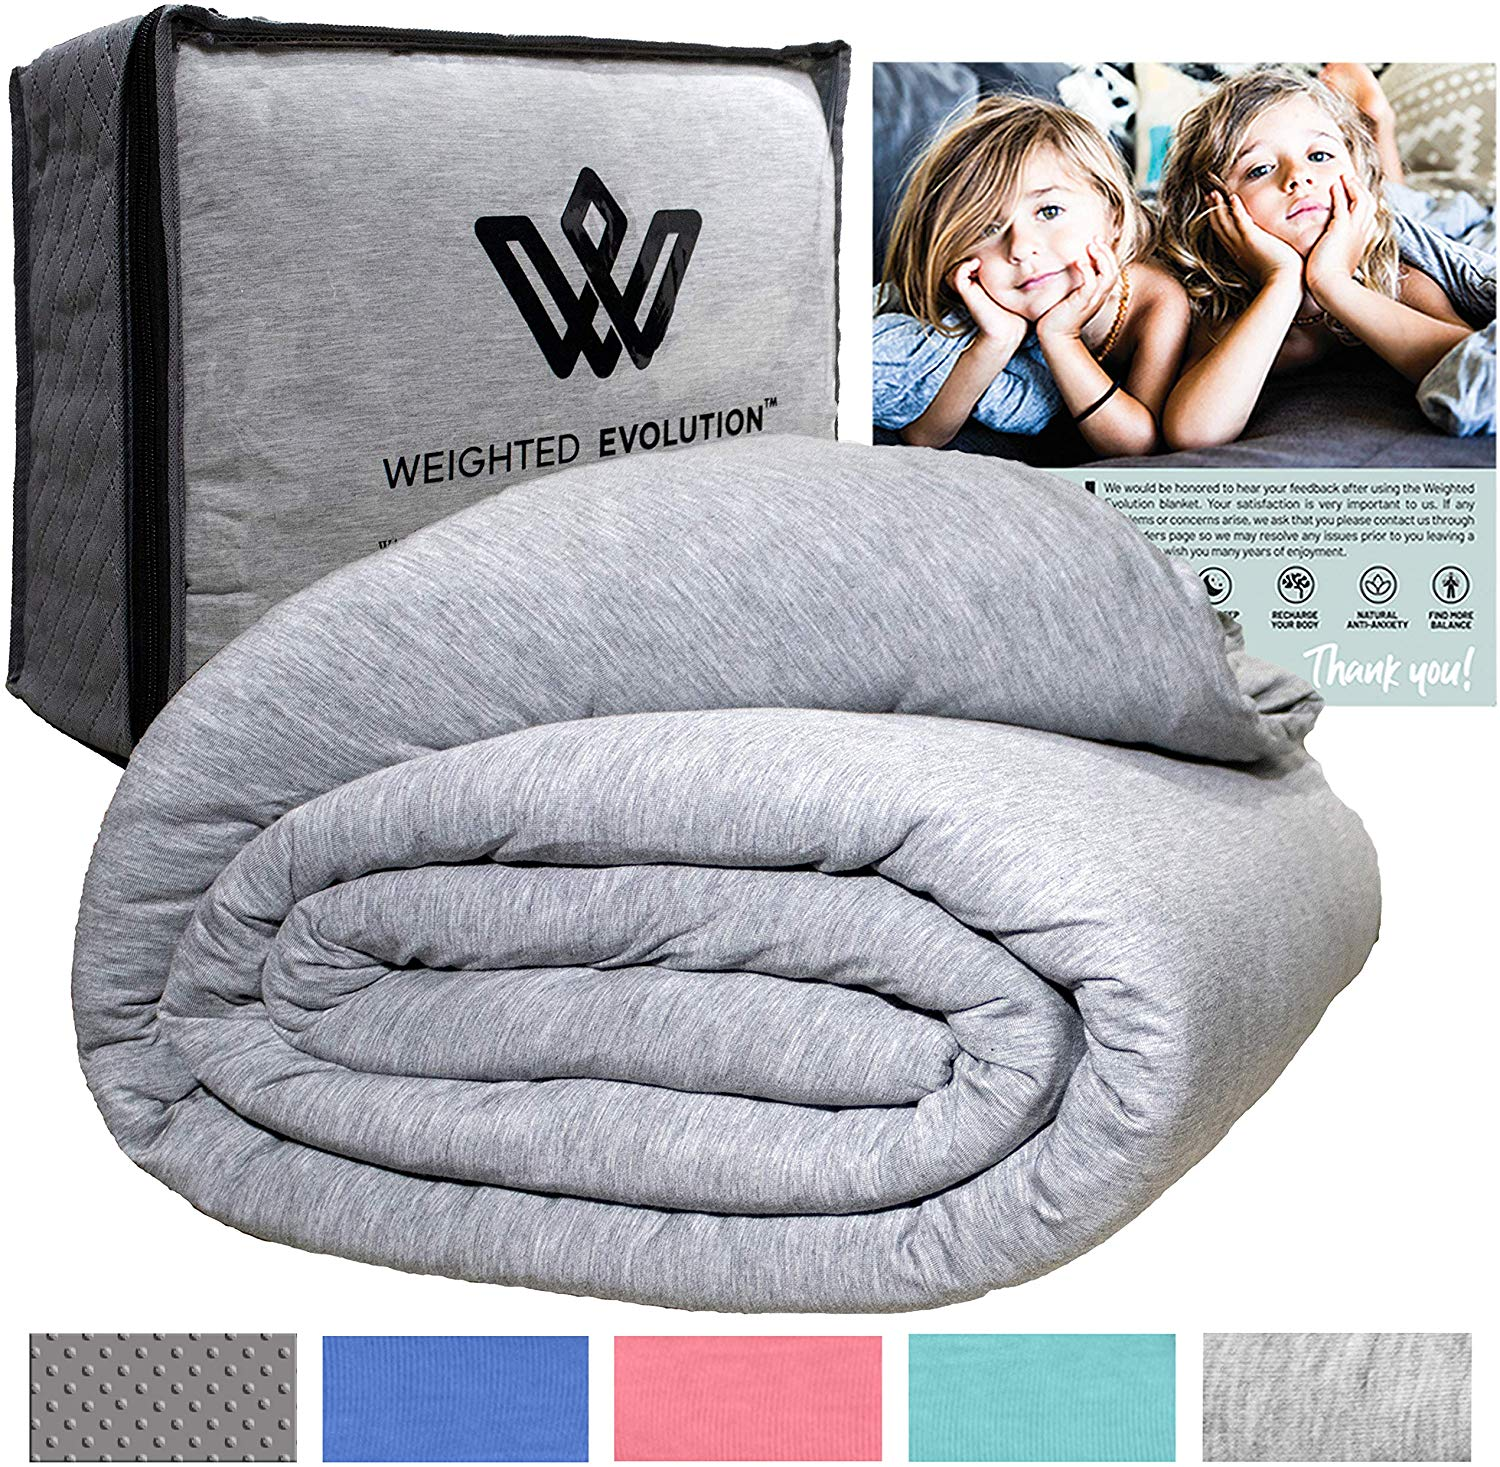 weighted blankets by weighted evolution